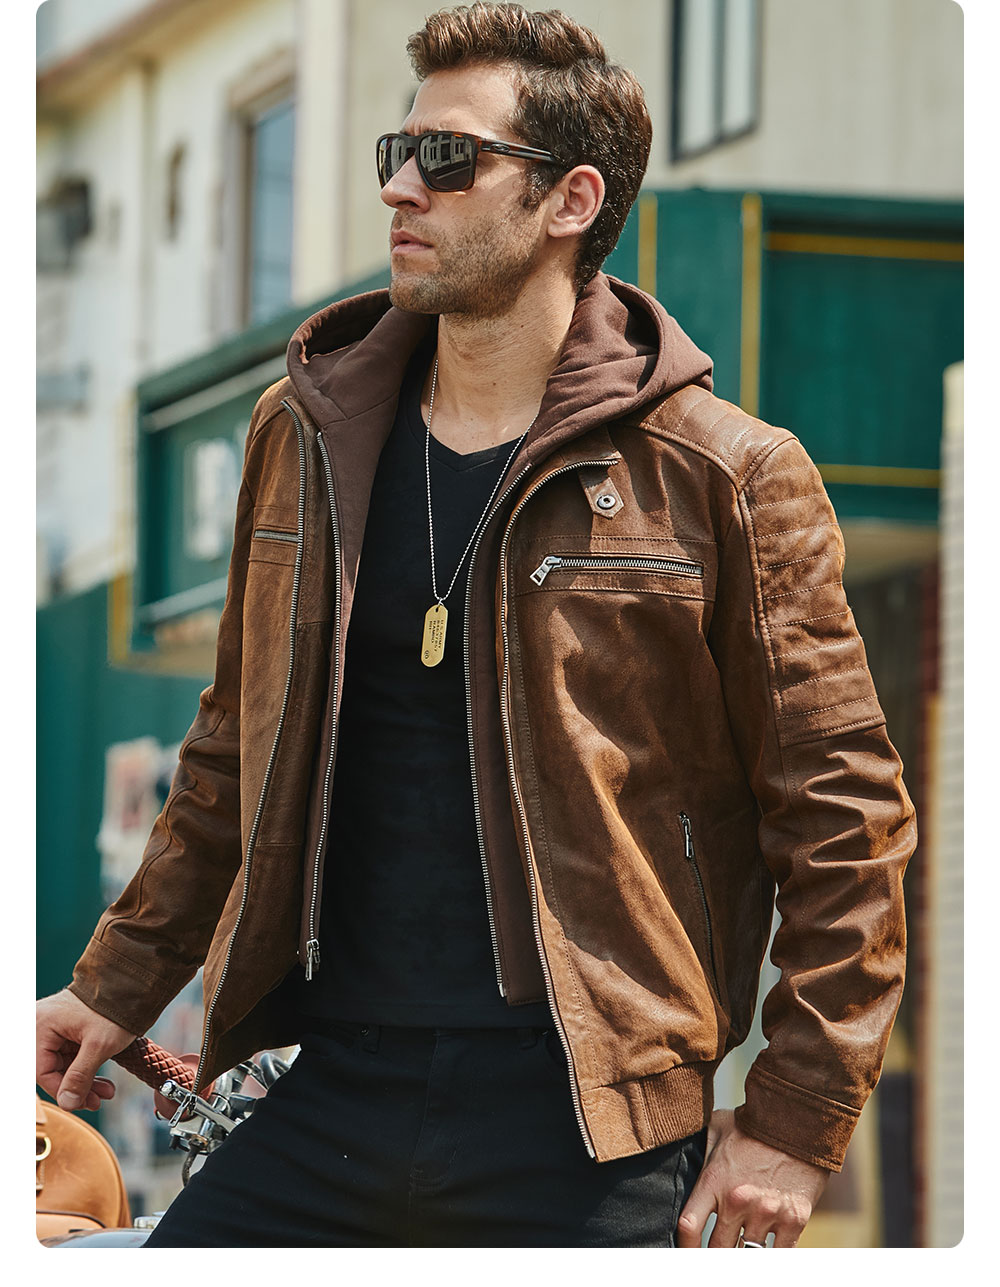 Hd189166d082a4865b702d4f79ee3ebe9W New Men's Leather Jacket, Brown Jacket Made Of Genuine Leather With A Removable Hood, Warm Leather Jacket For Men For The Winter